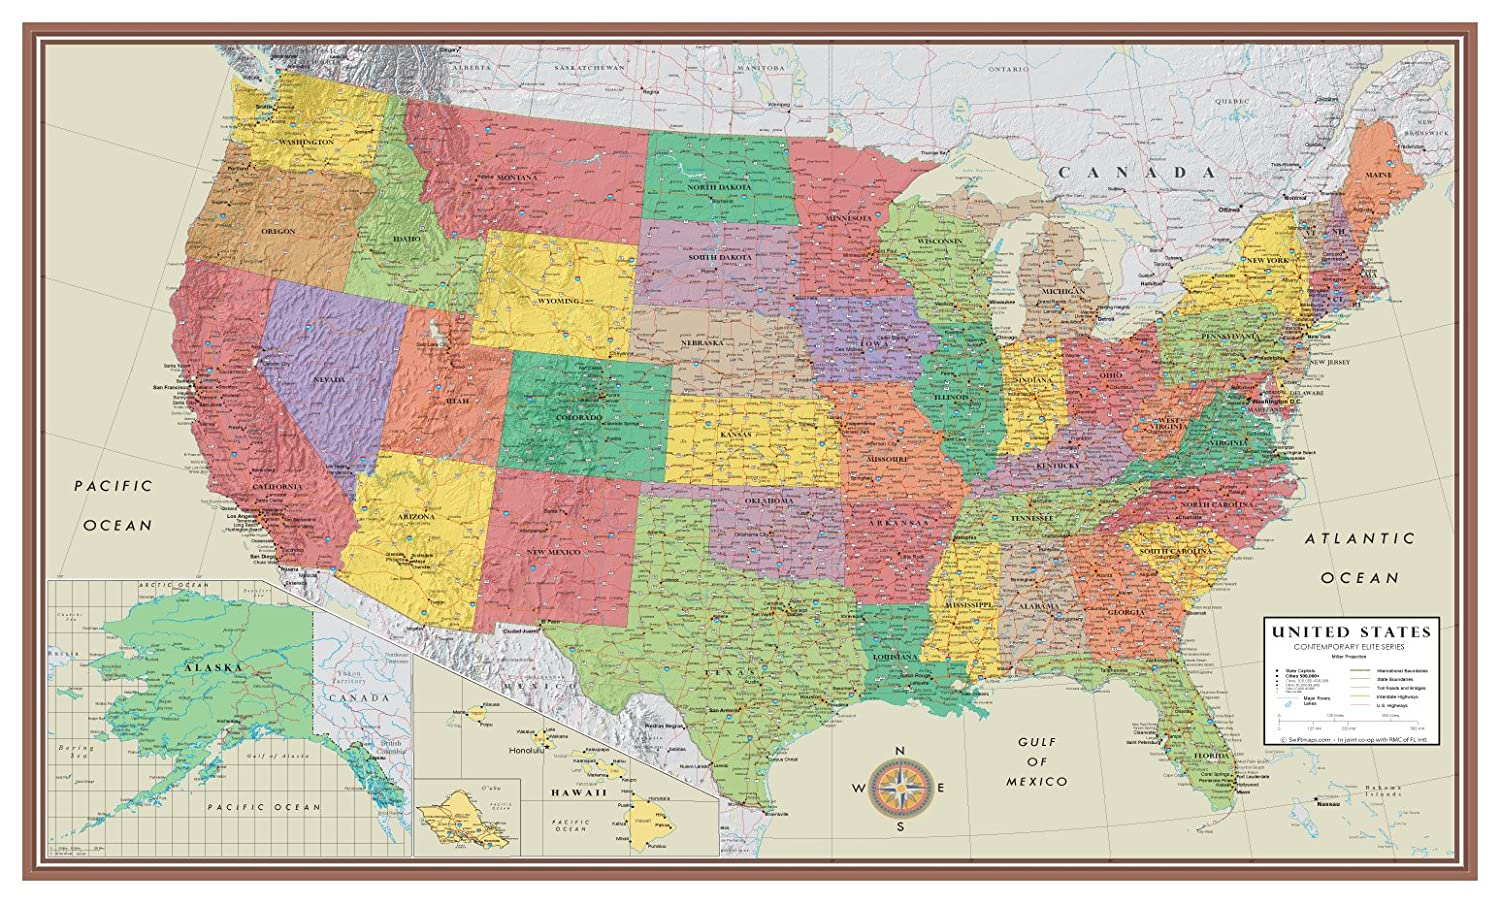 Amazoncom X United States USA Contemporary Elite Wall Map - Usa maps of states